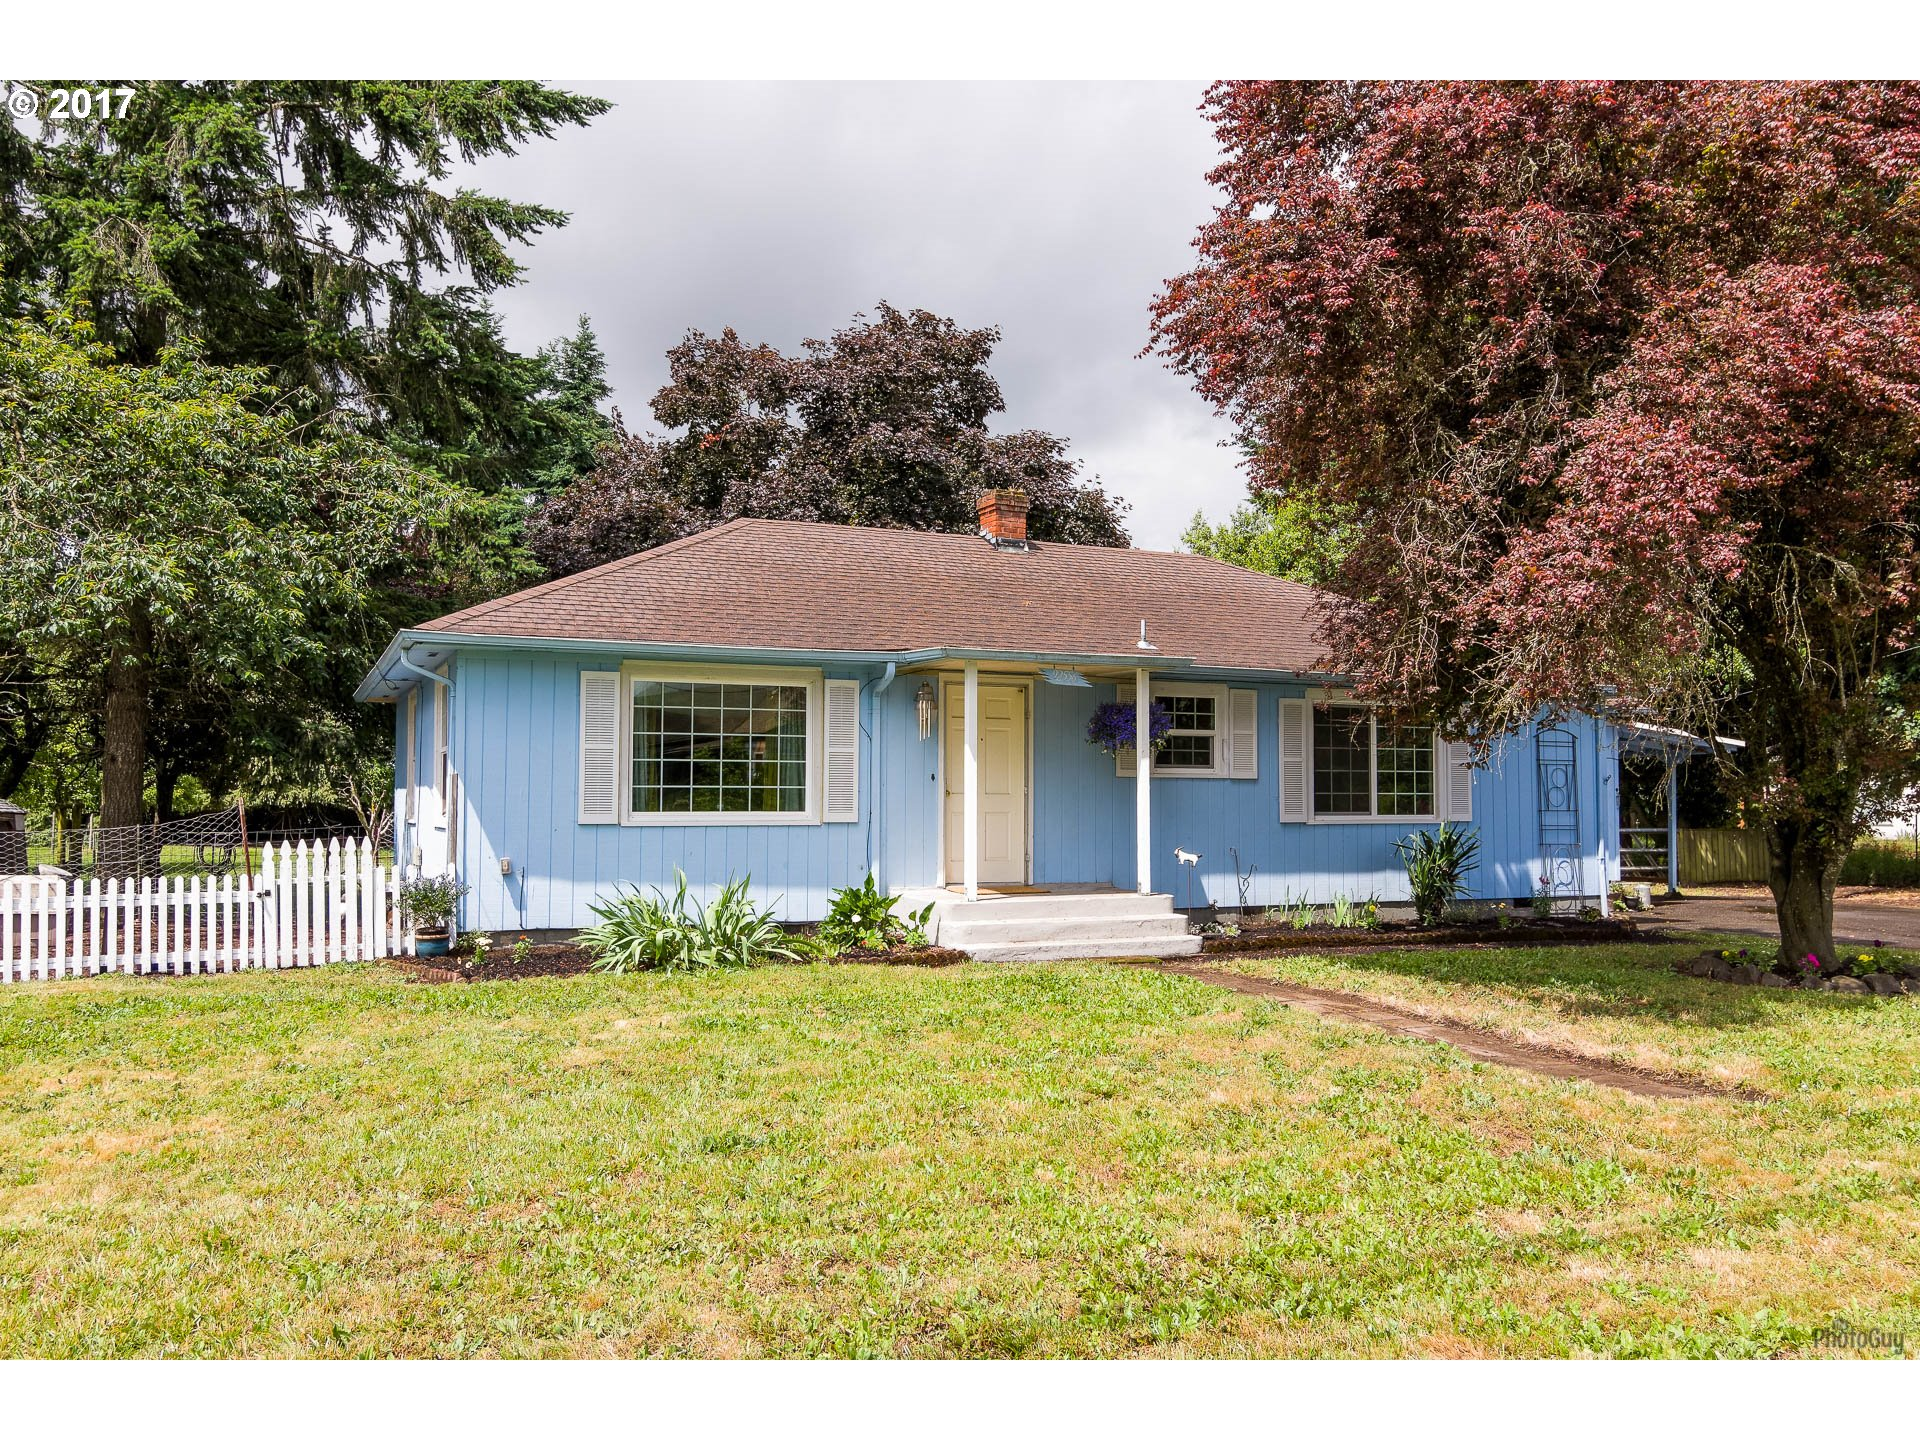 92556 RIVER RD, Junction City, OR 97448